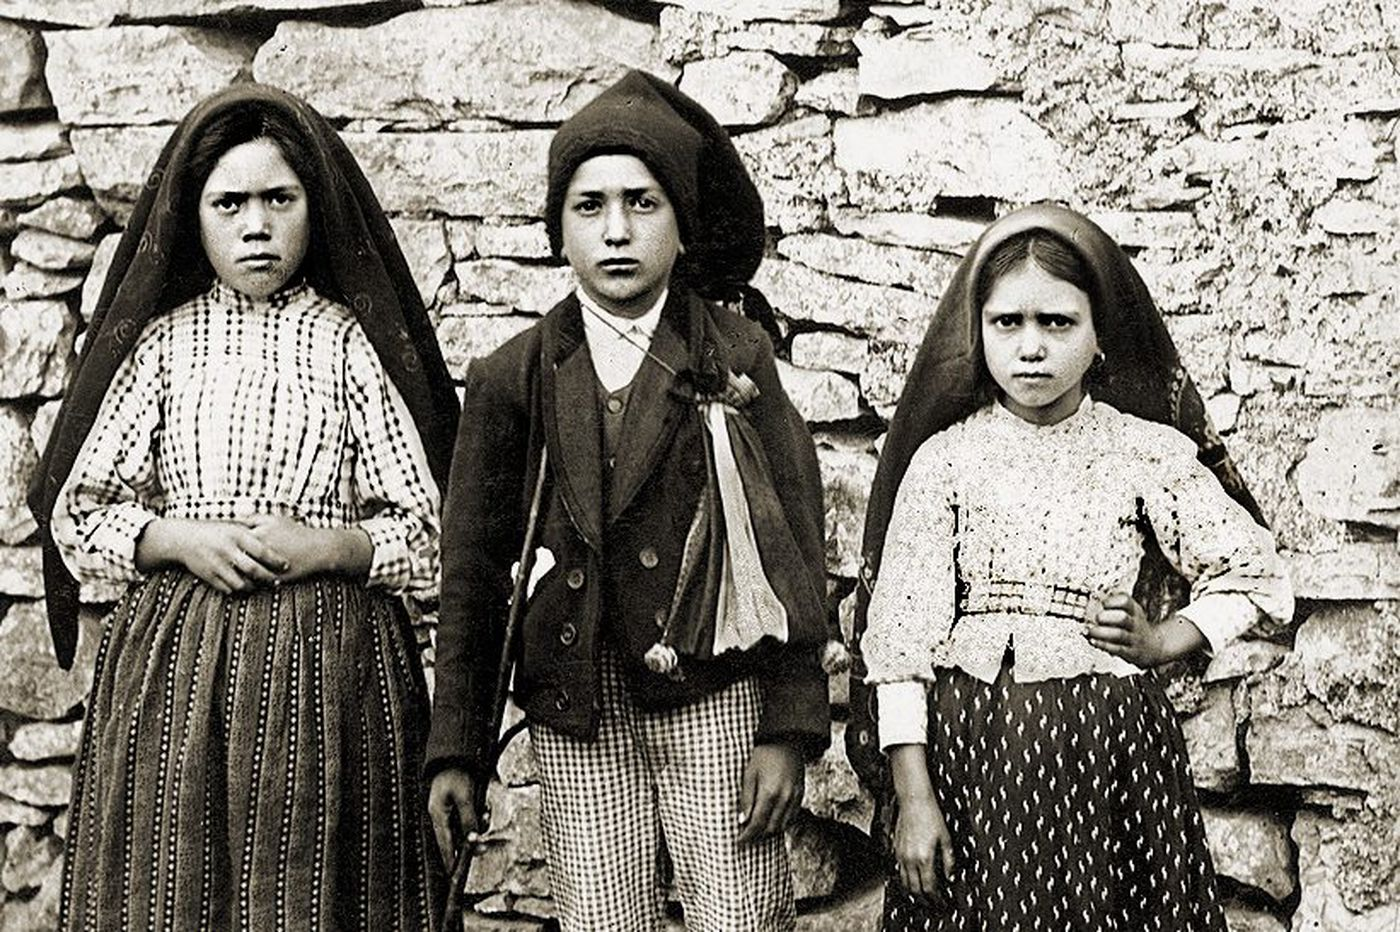 Catholics mark 100 years since Our Lady of Fatima warned about Russia and war